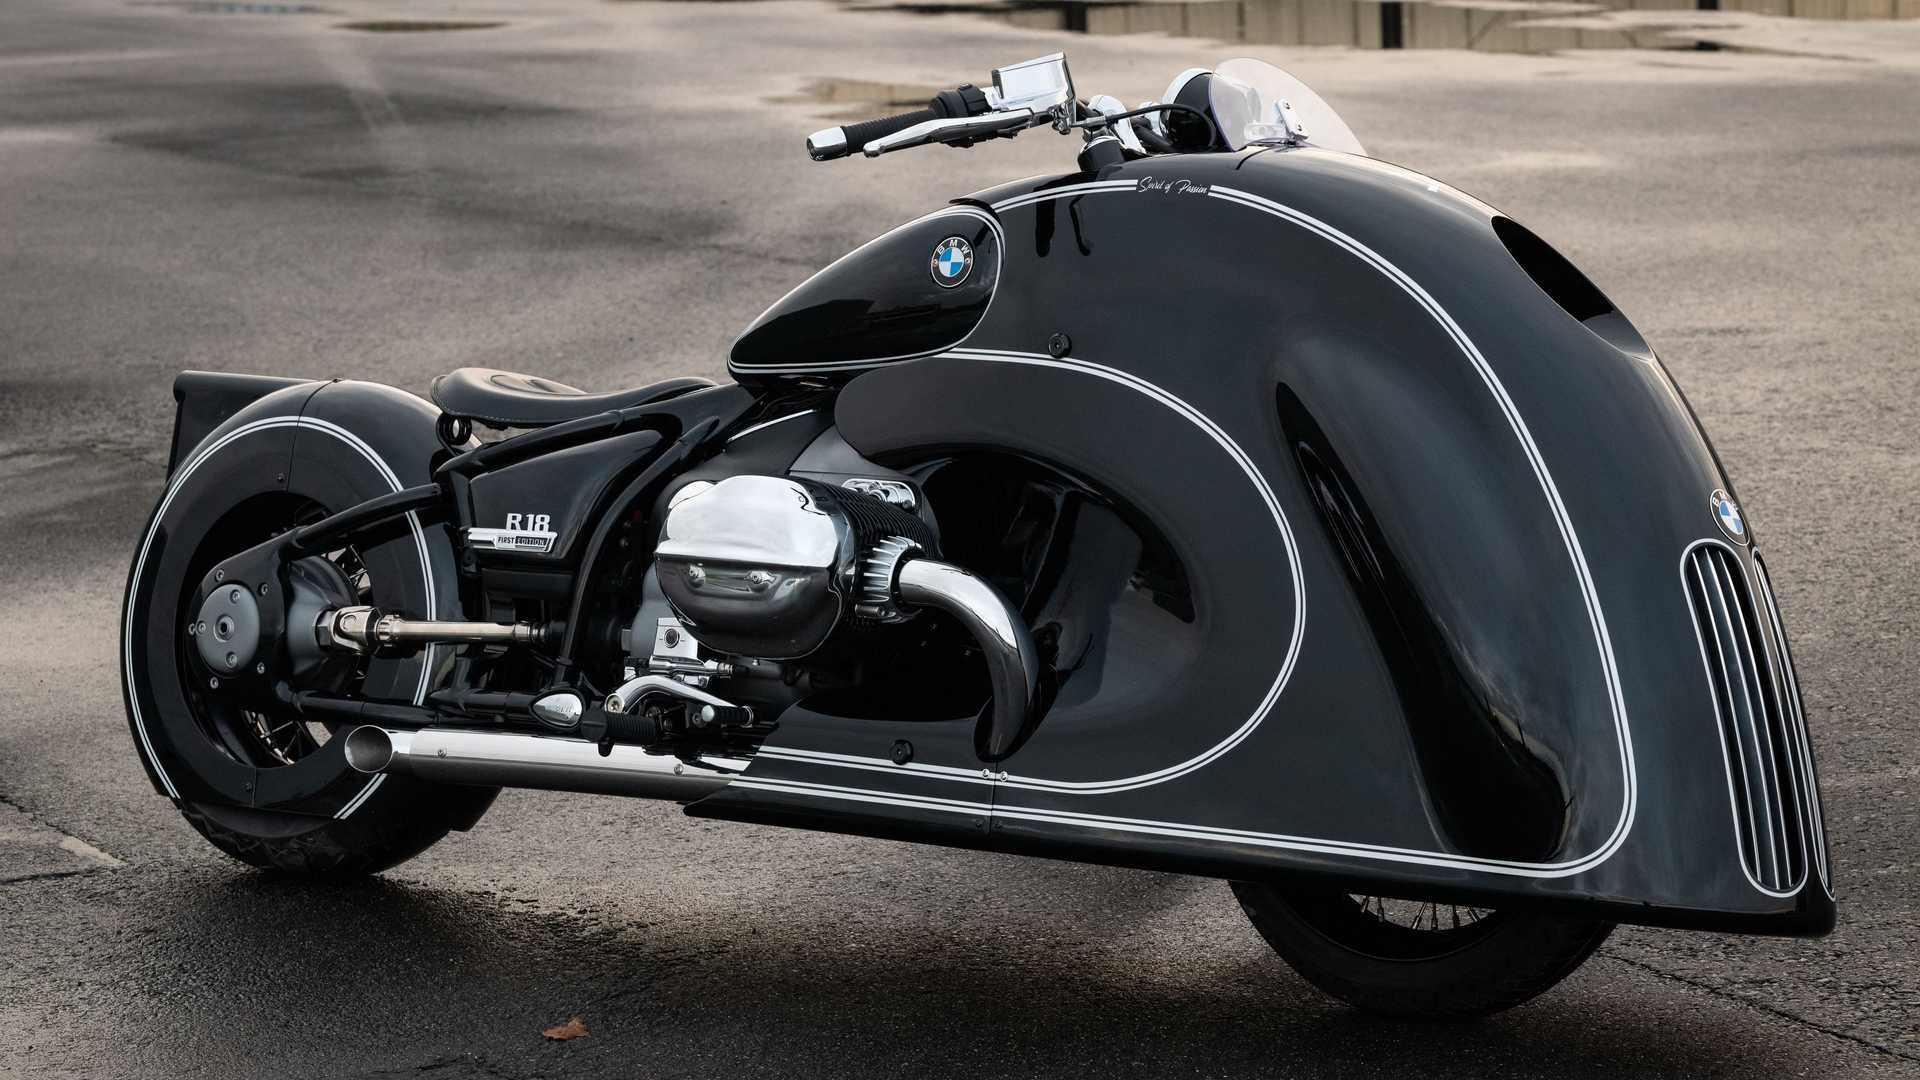 Kingston Customs And BMW Motorrad Unveil Art Deco-Inspired R 18 - RideApart